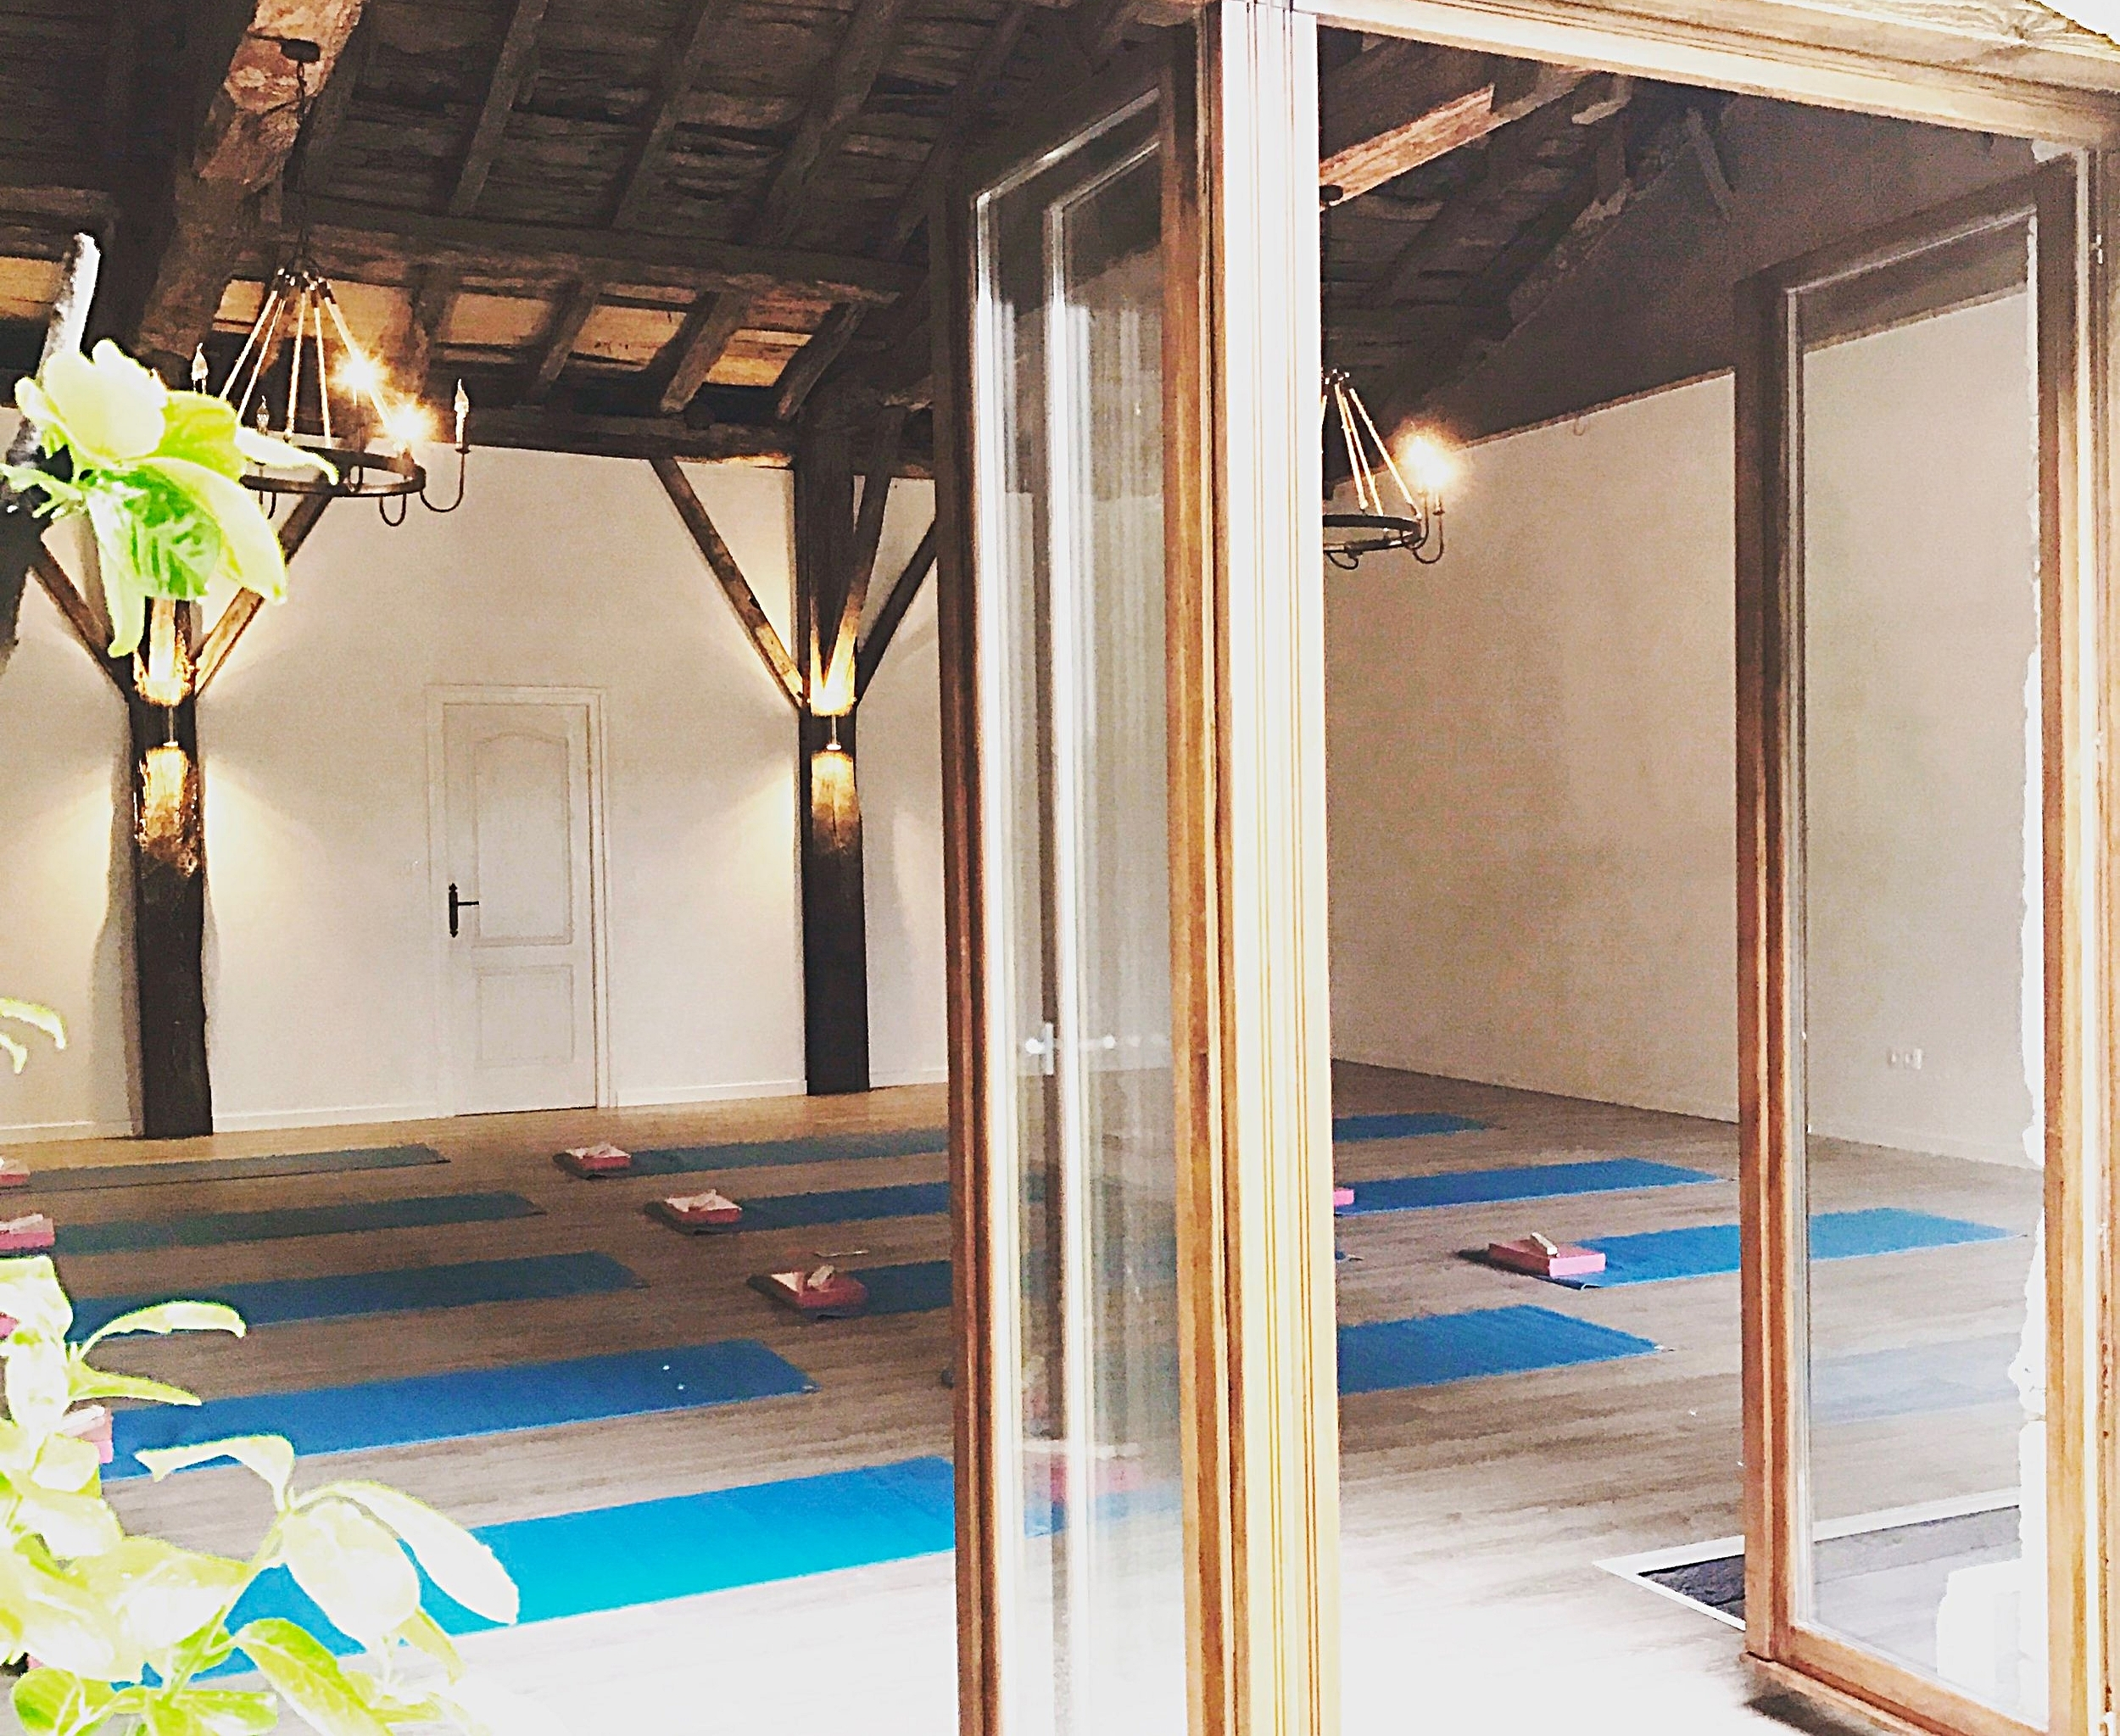 Welcome to the yoga room, come on in...